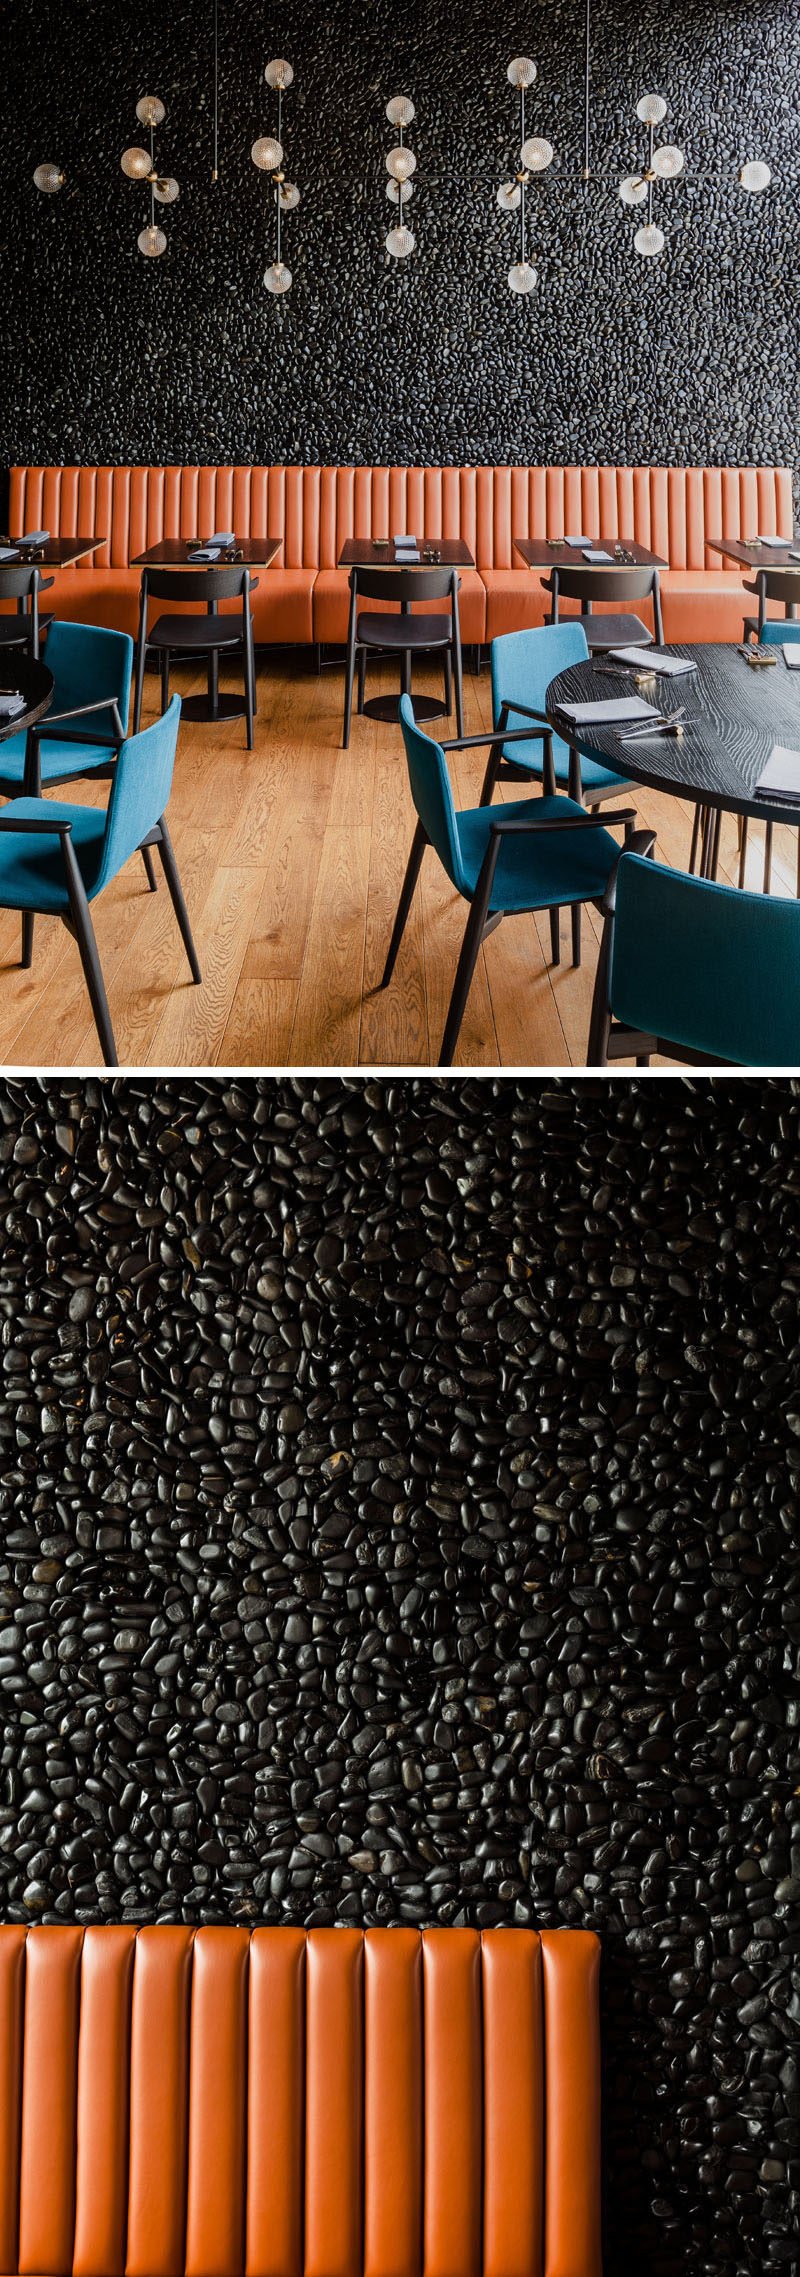 Leather banquette seating sits against a background of hand-laid wall mosaic of blackpebbles in this modern restaurant. #Pebbles #AccentWall #RestaurantDesign